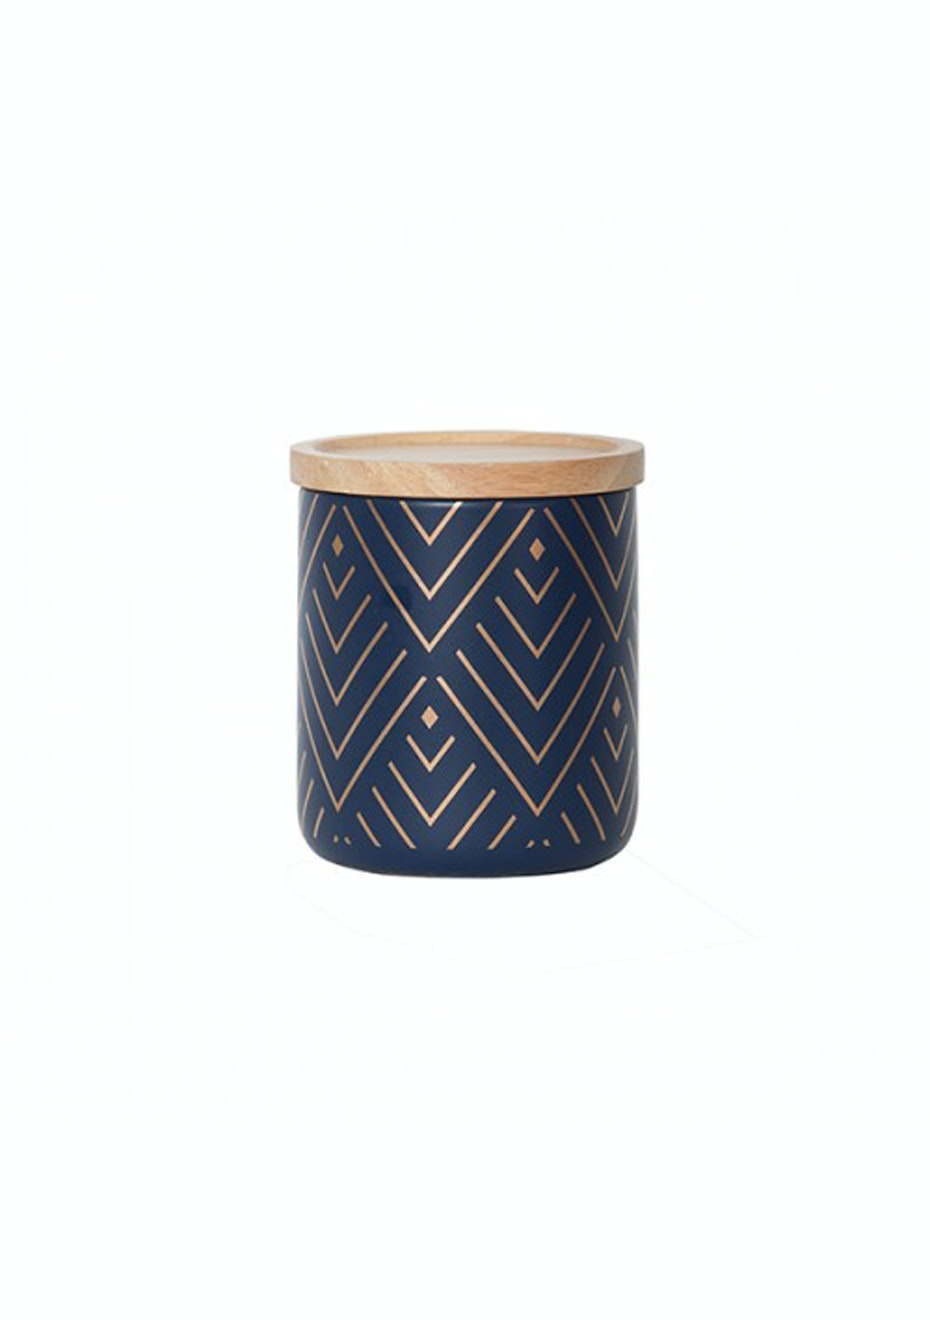 General Eclectic - Med Canister Navy Gold